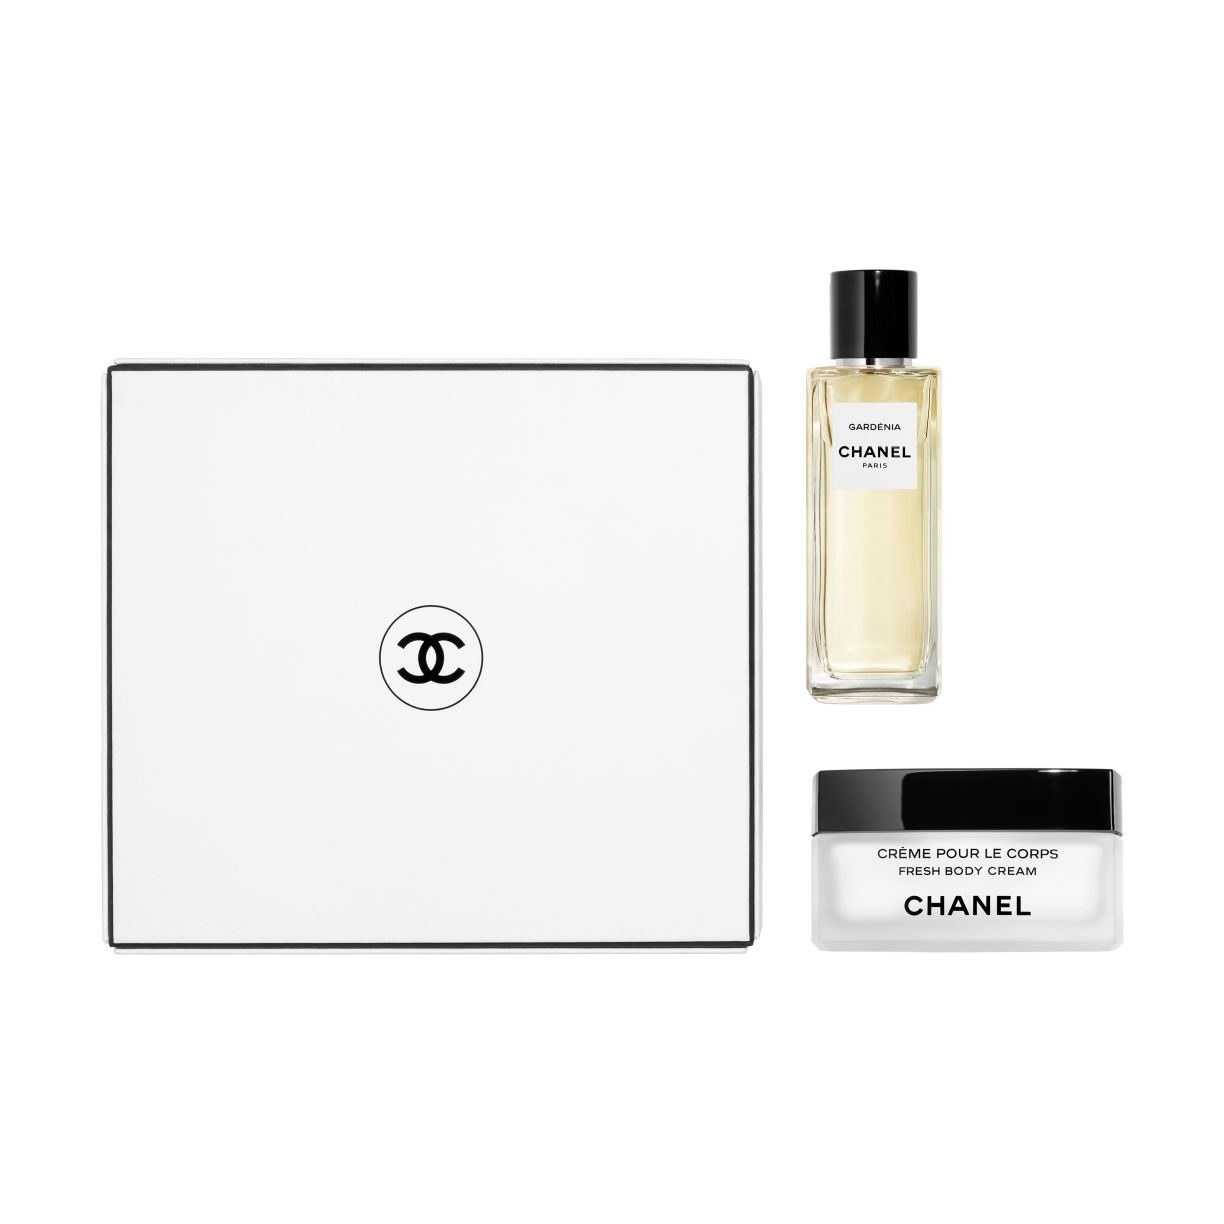 LES EXCLUSIFS DE CHANEL GARDÉNIA EAU DE PARFUM 75 ML AND FRESH BODY CREAM COFFRET 1pce